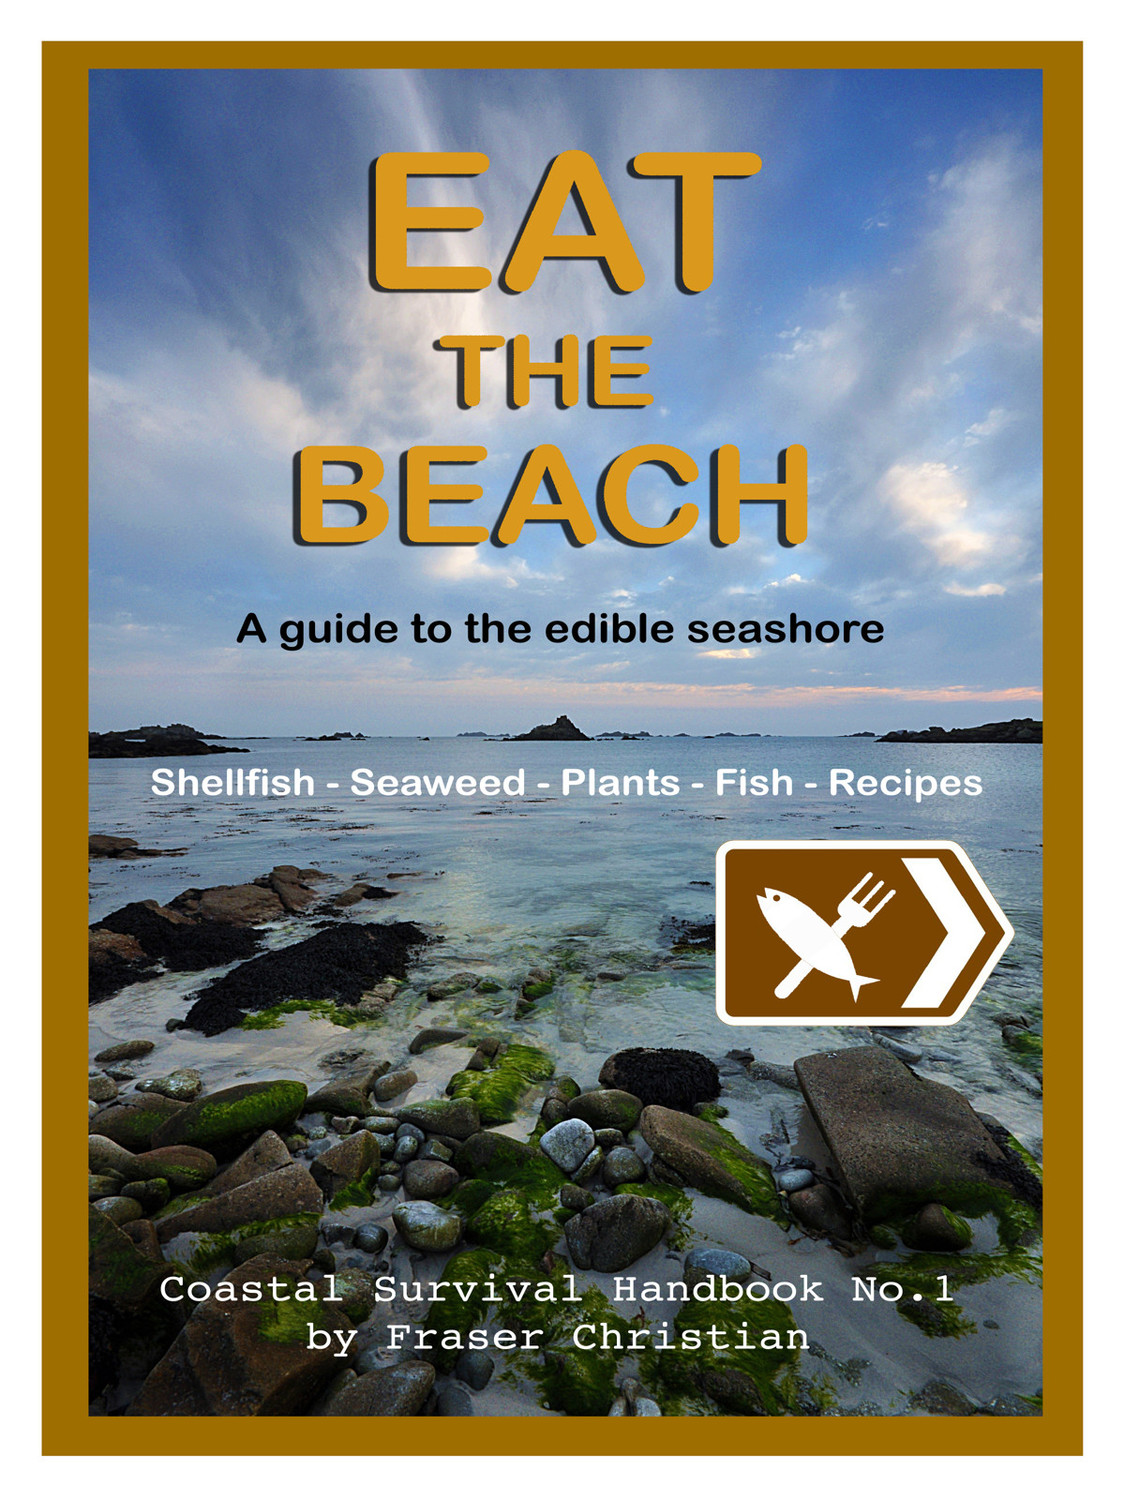 Book cover for Eat the Beach:  A Guide to the Edible Seashore a book by Fraser  Christian